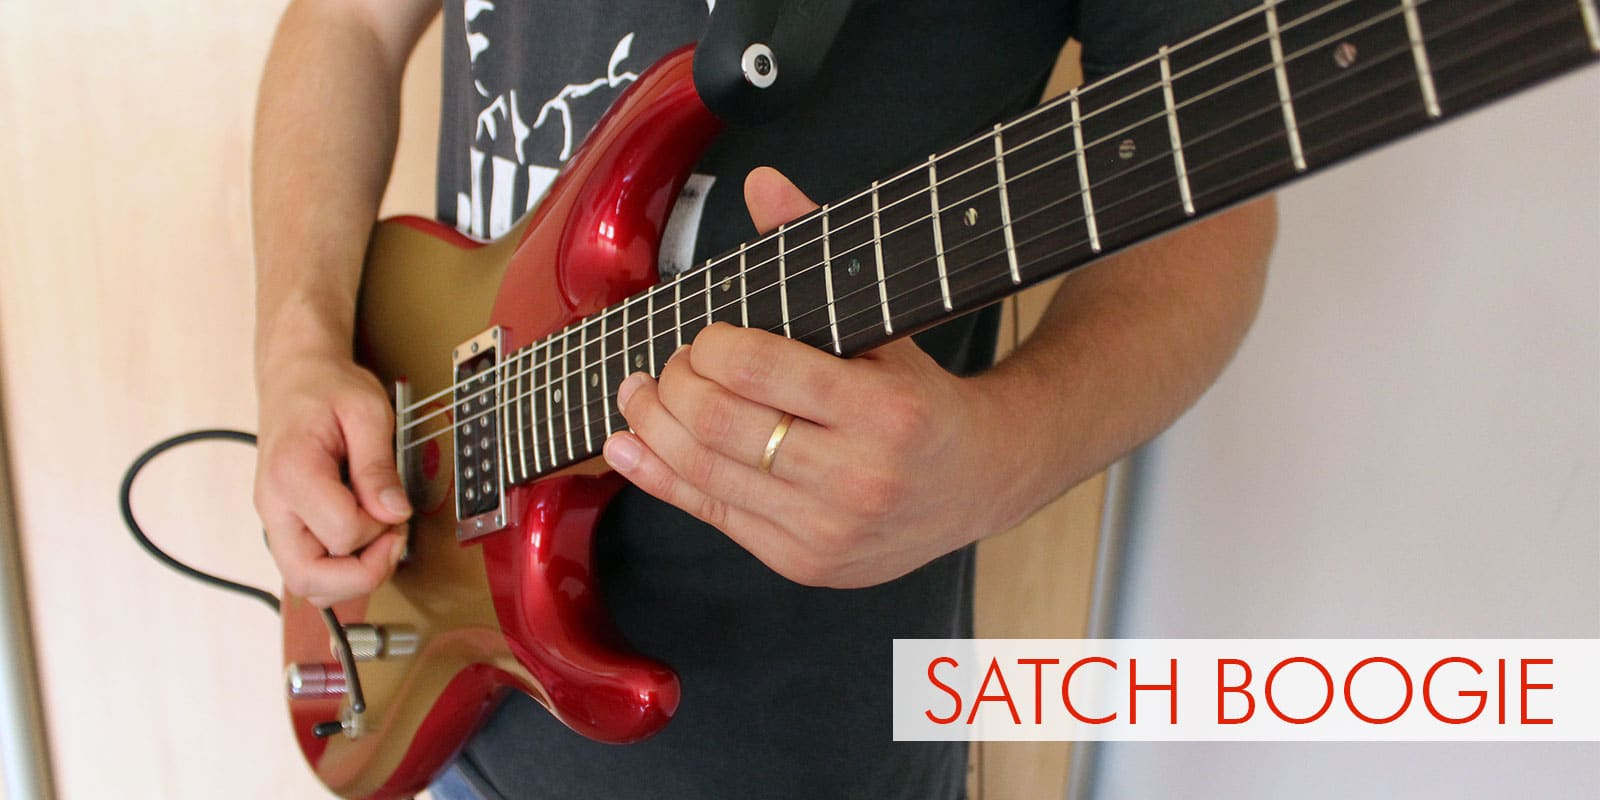 Satch Boogie Lesson Saturax